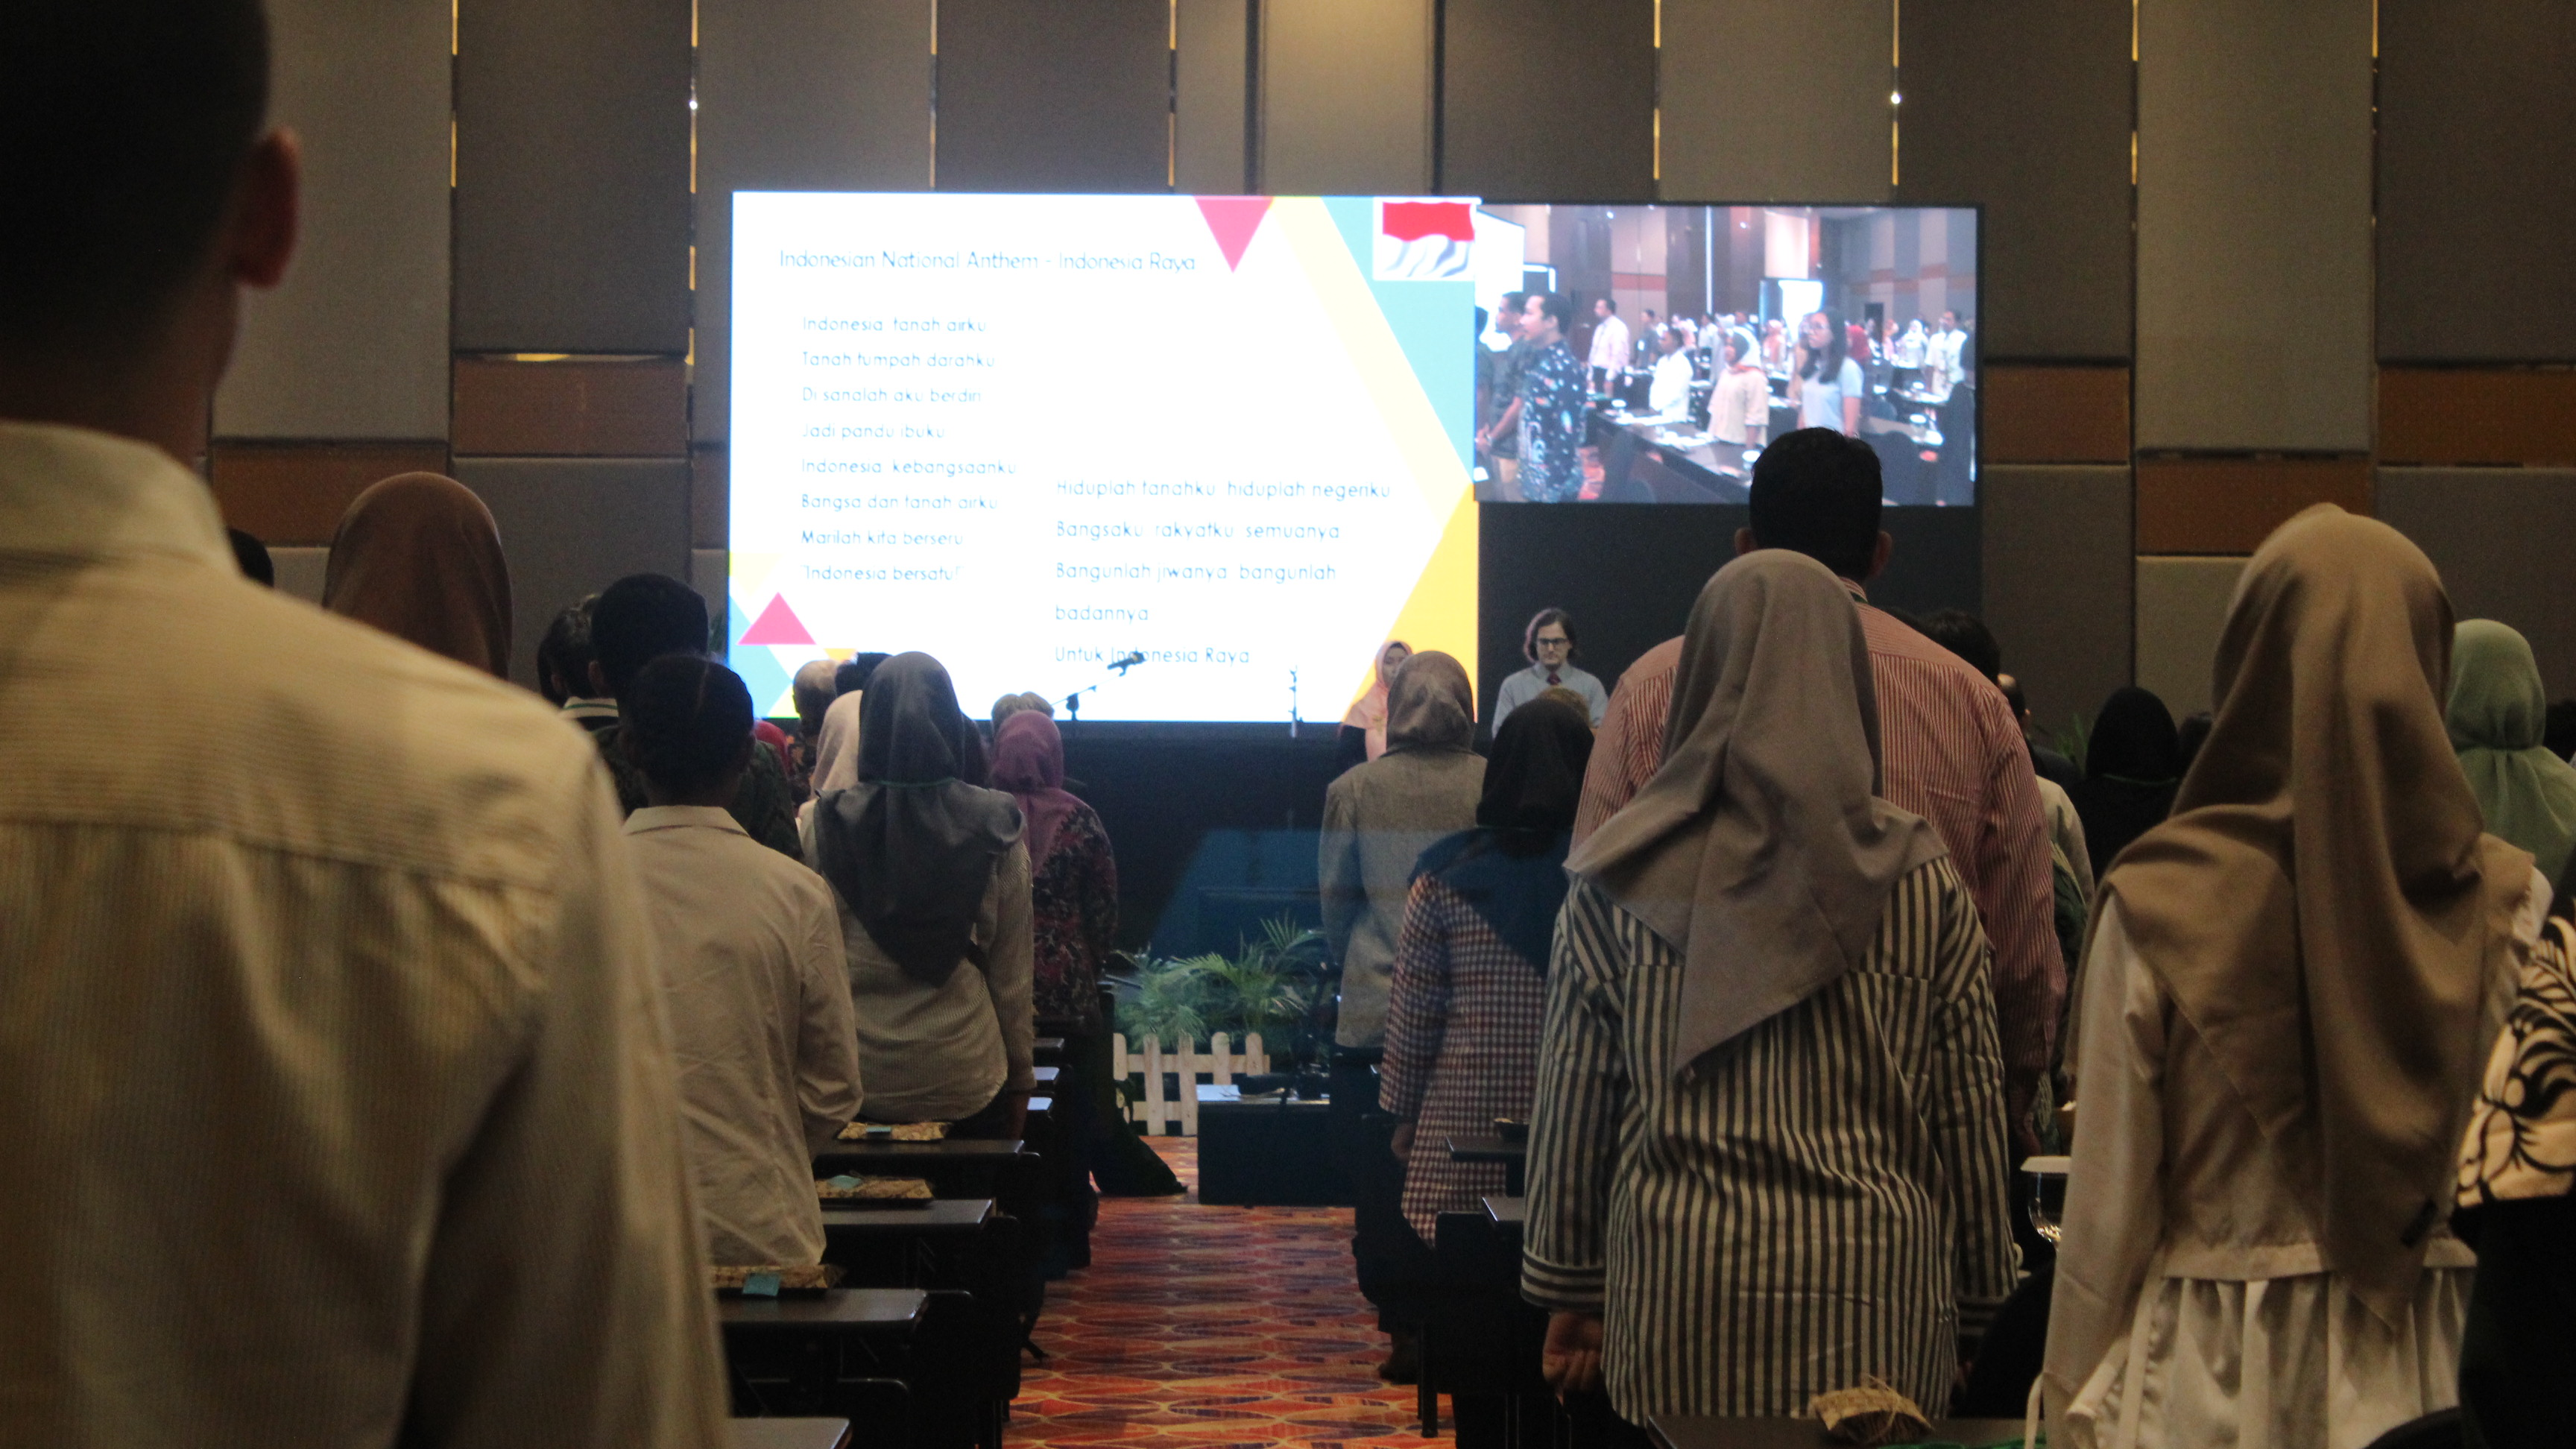 Singing Indonesia Athem together (all participants, speakers, and committees